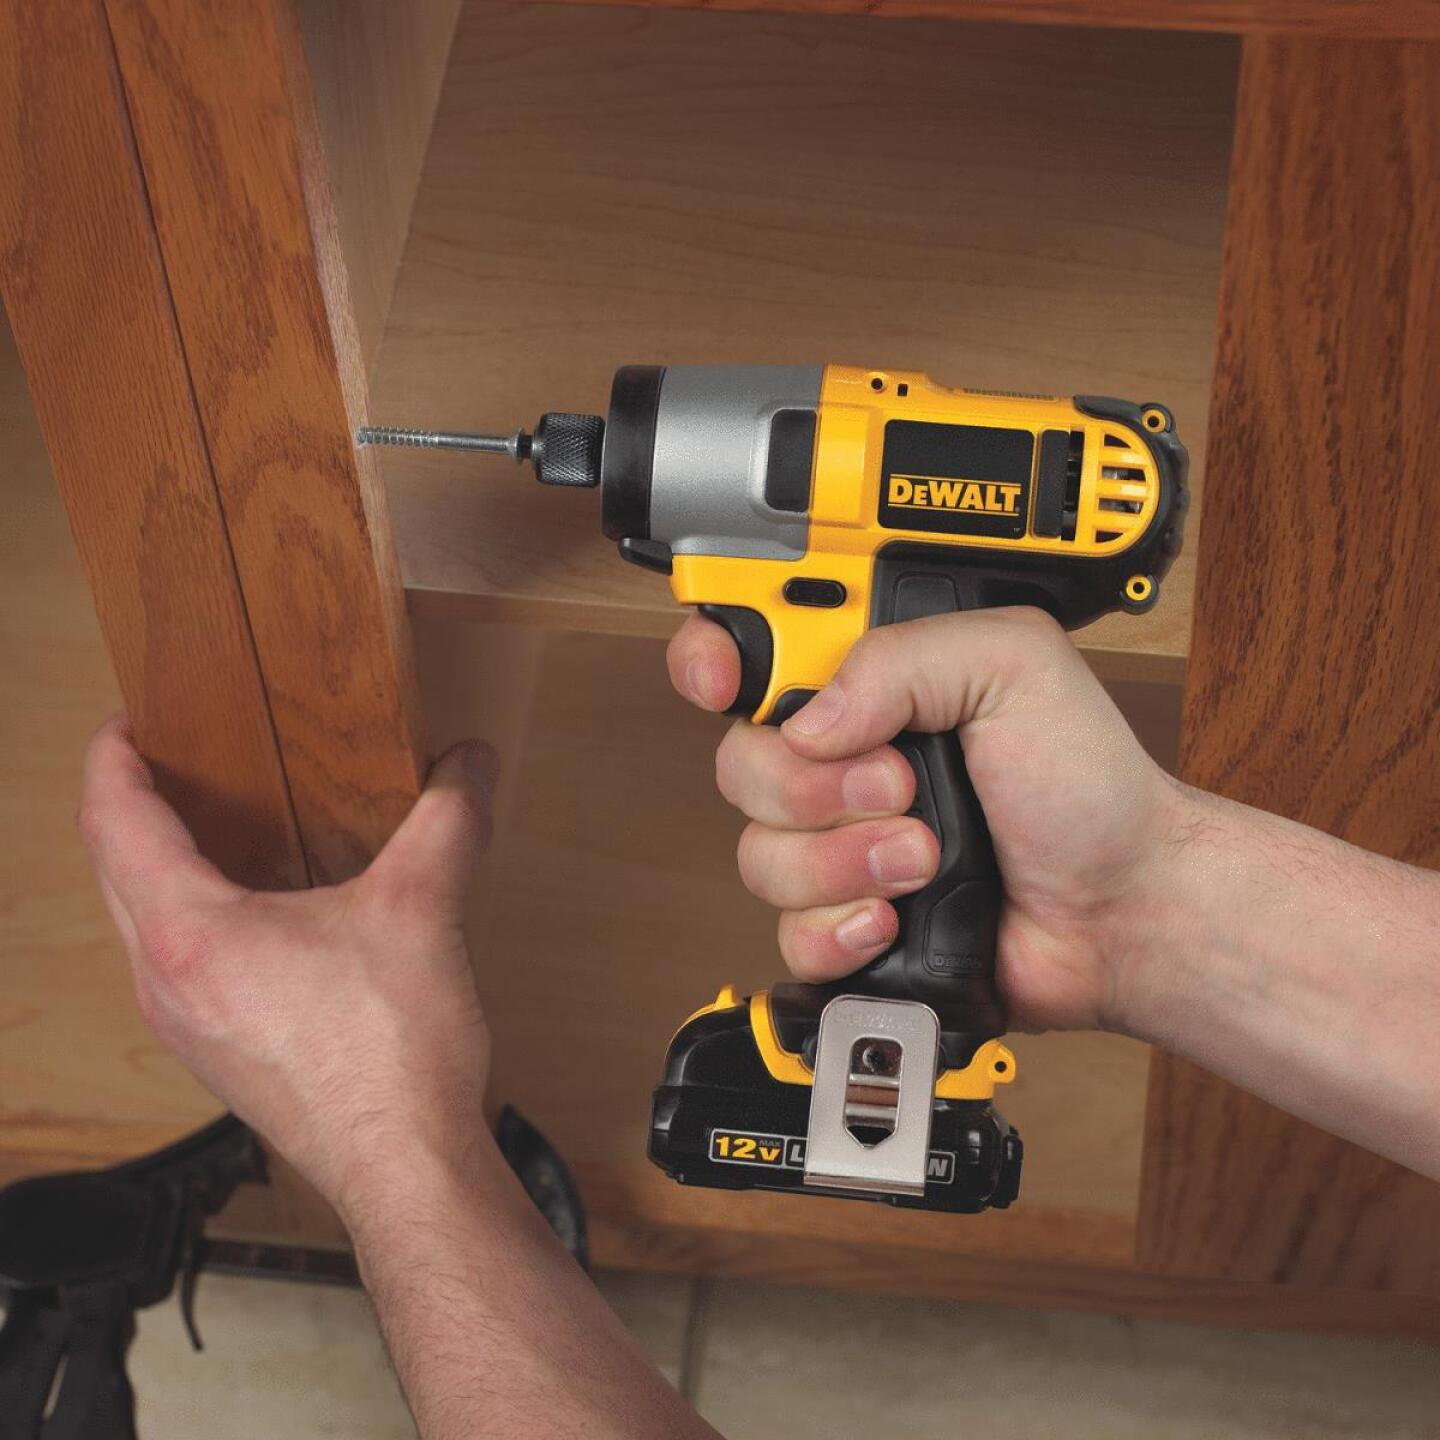 DeWalt XTREME 12V MAX XR Lithium-Ion 1/4 In. Hex Brushless Cordless Impact Driver Kit Image 3